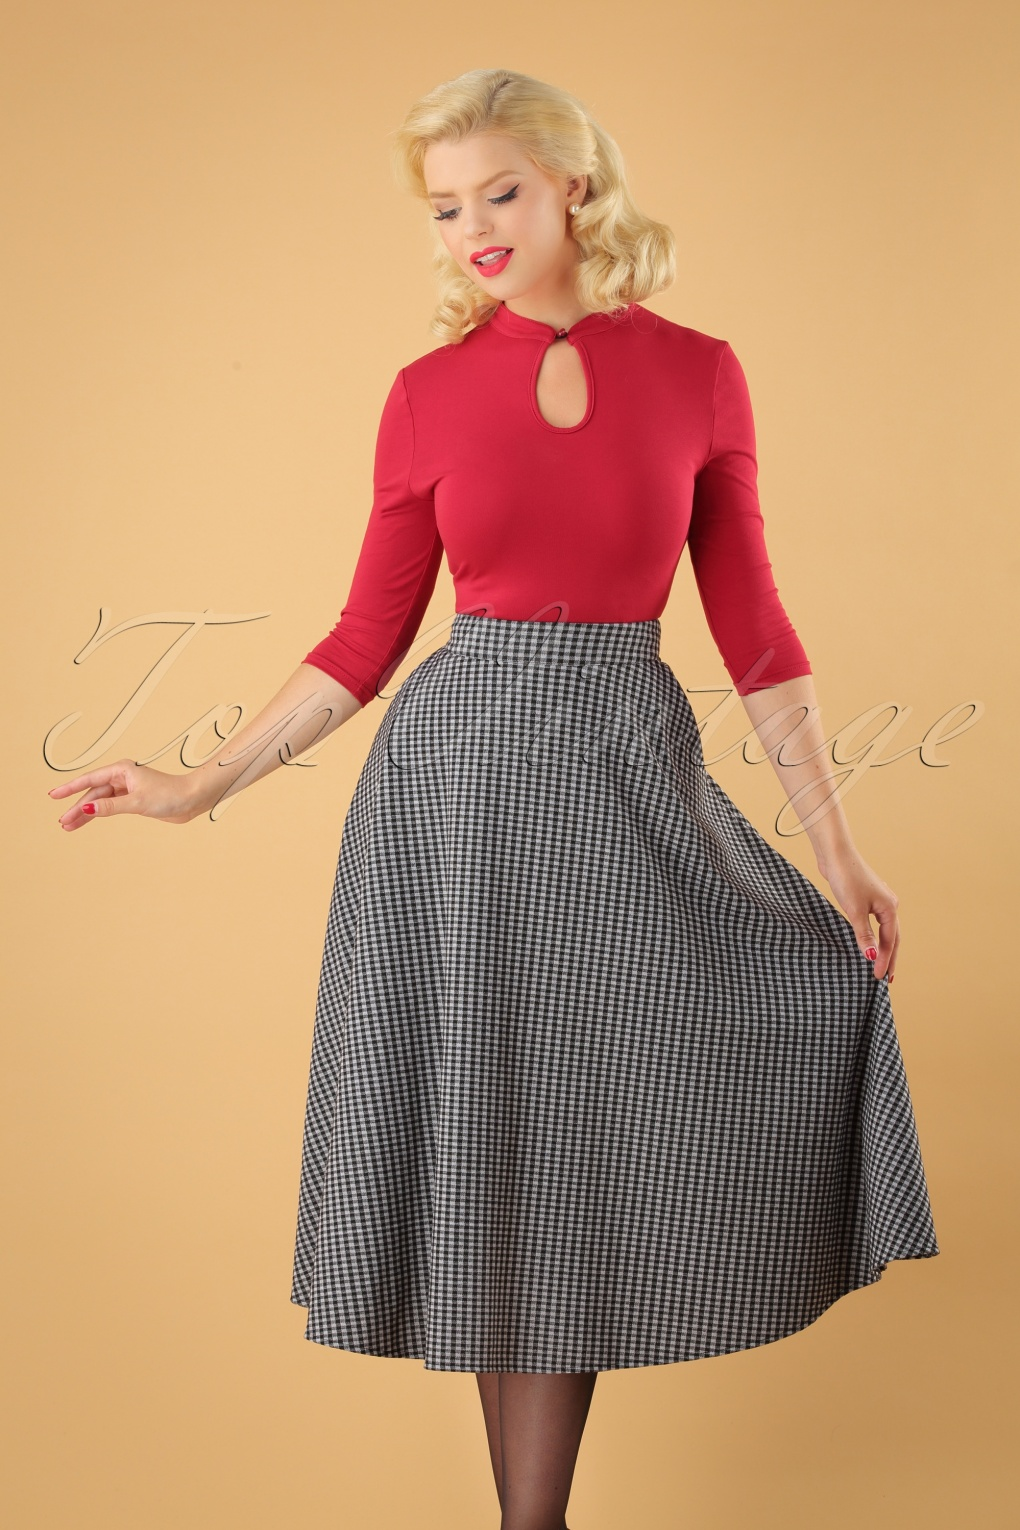 1950s Swing Skirt, Poodle Skirt, Pencil Skirts 50s Arianna Gingham Swing Skirt in Black and White £39.86 AT vintagedancer.com